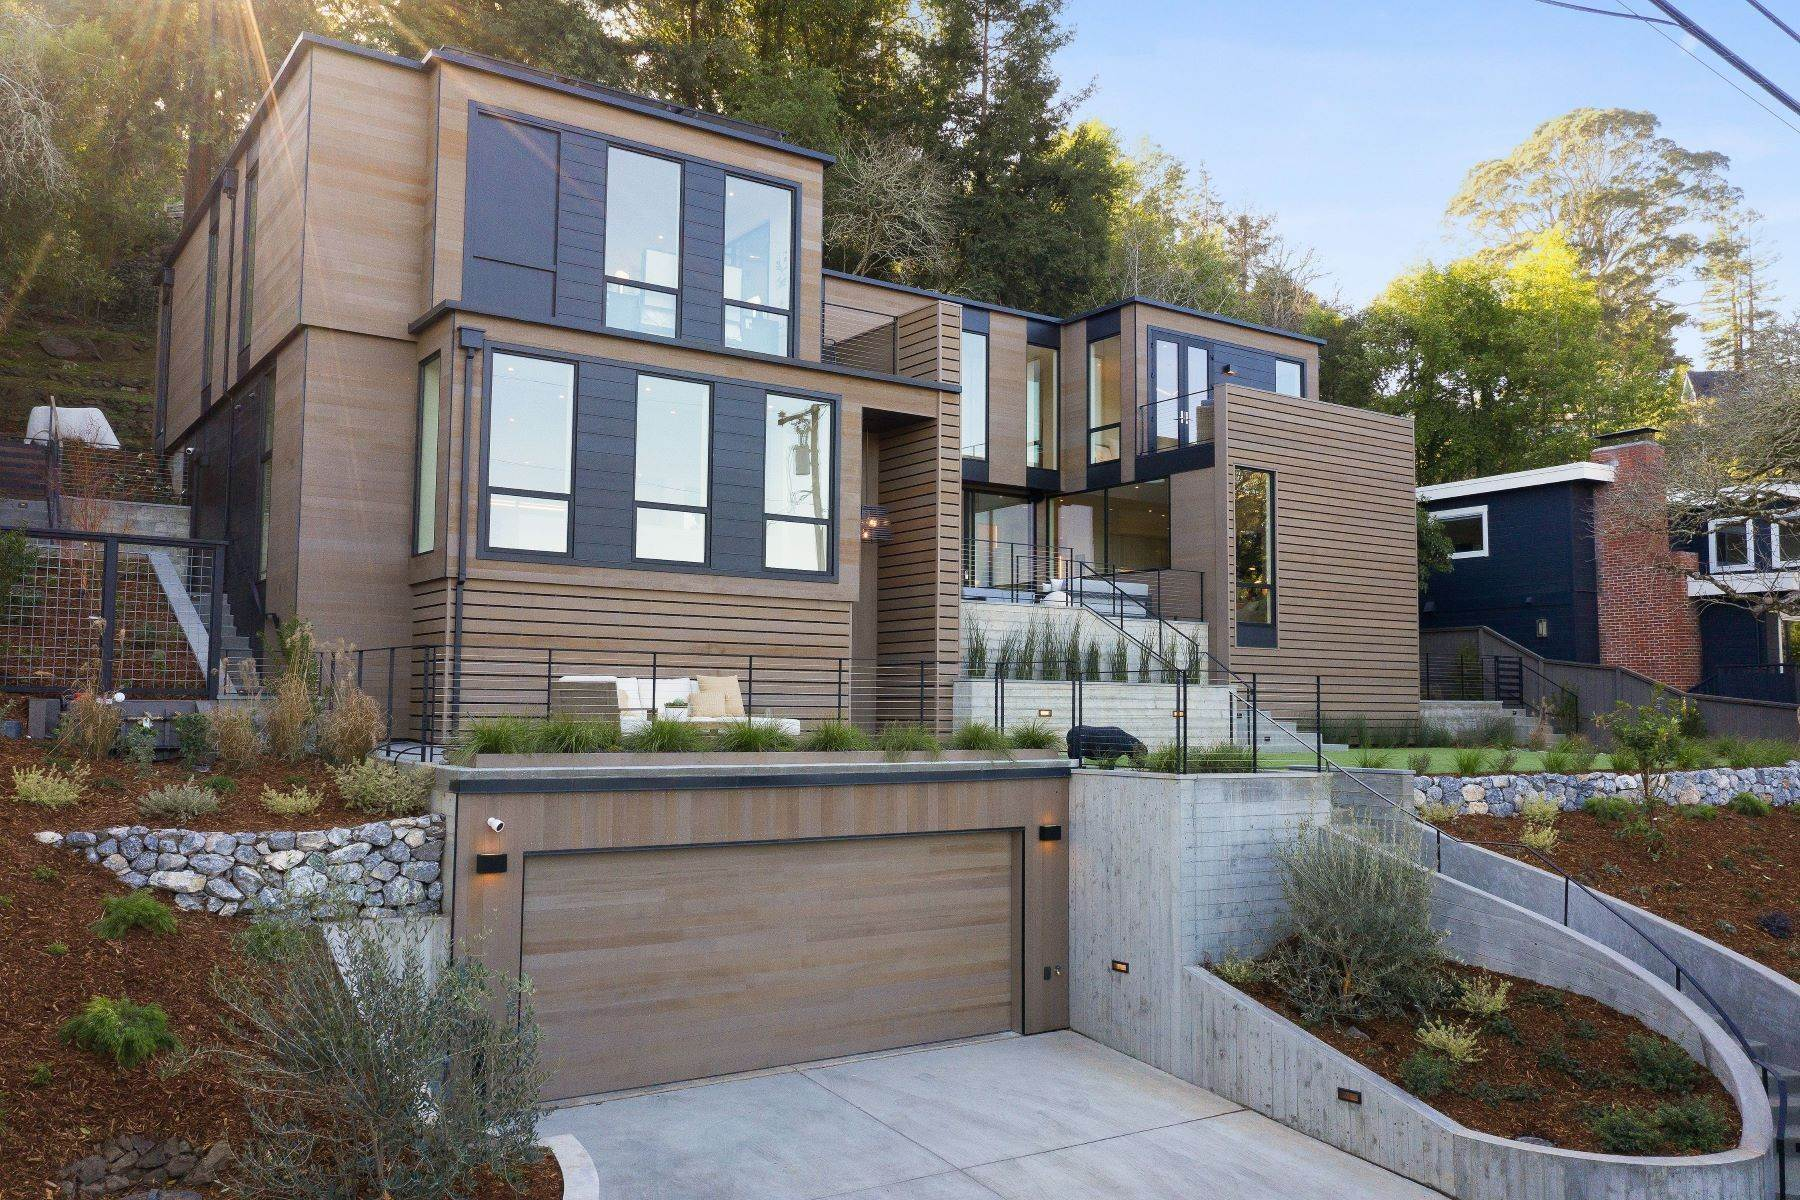 Single Family Homes for Sale at Modern Mill Valley New Construction 216 Ethel Avenue Mill Valley, California 94941 United States